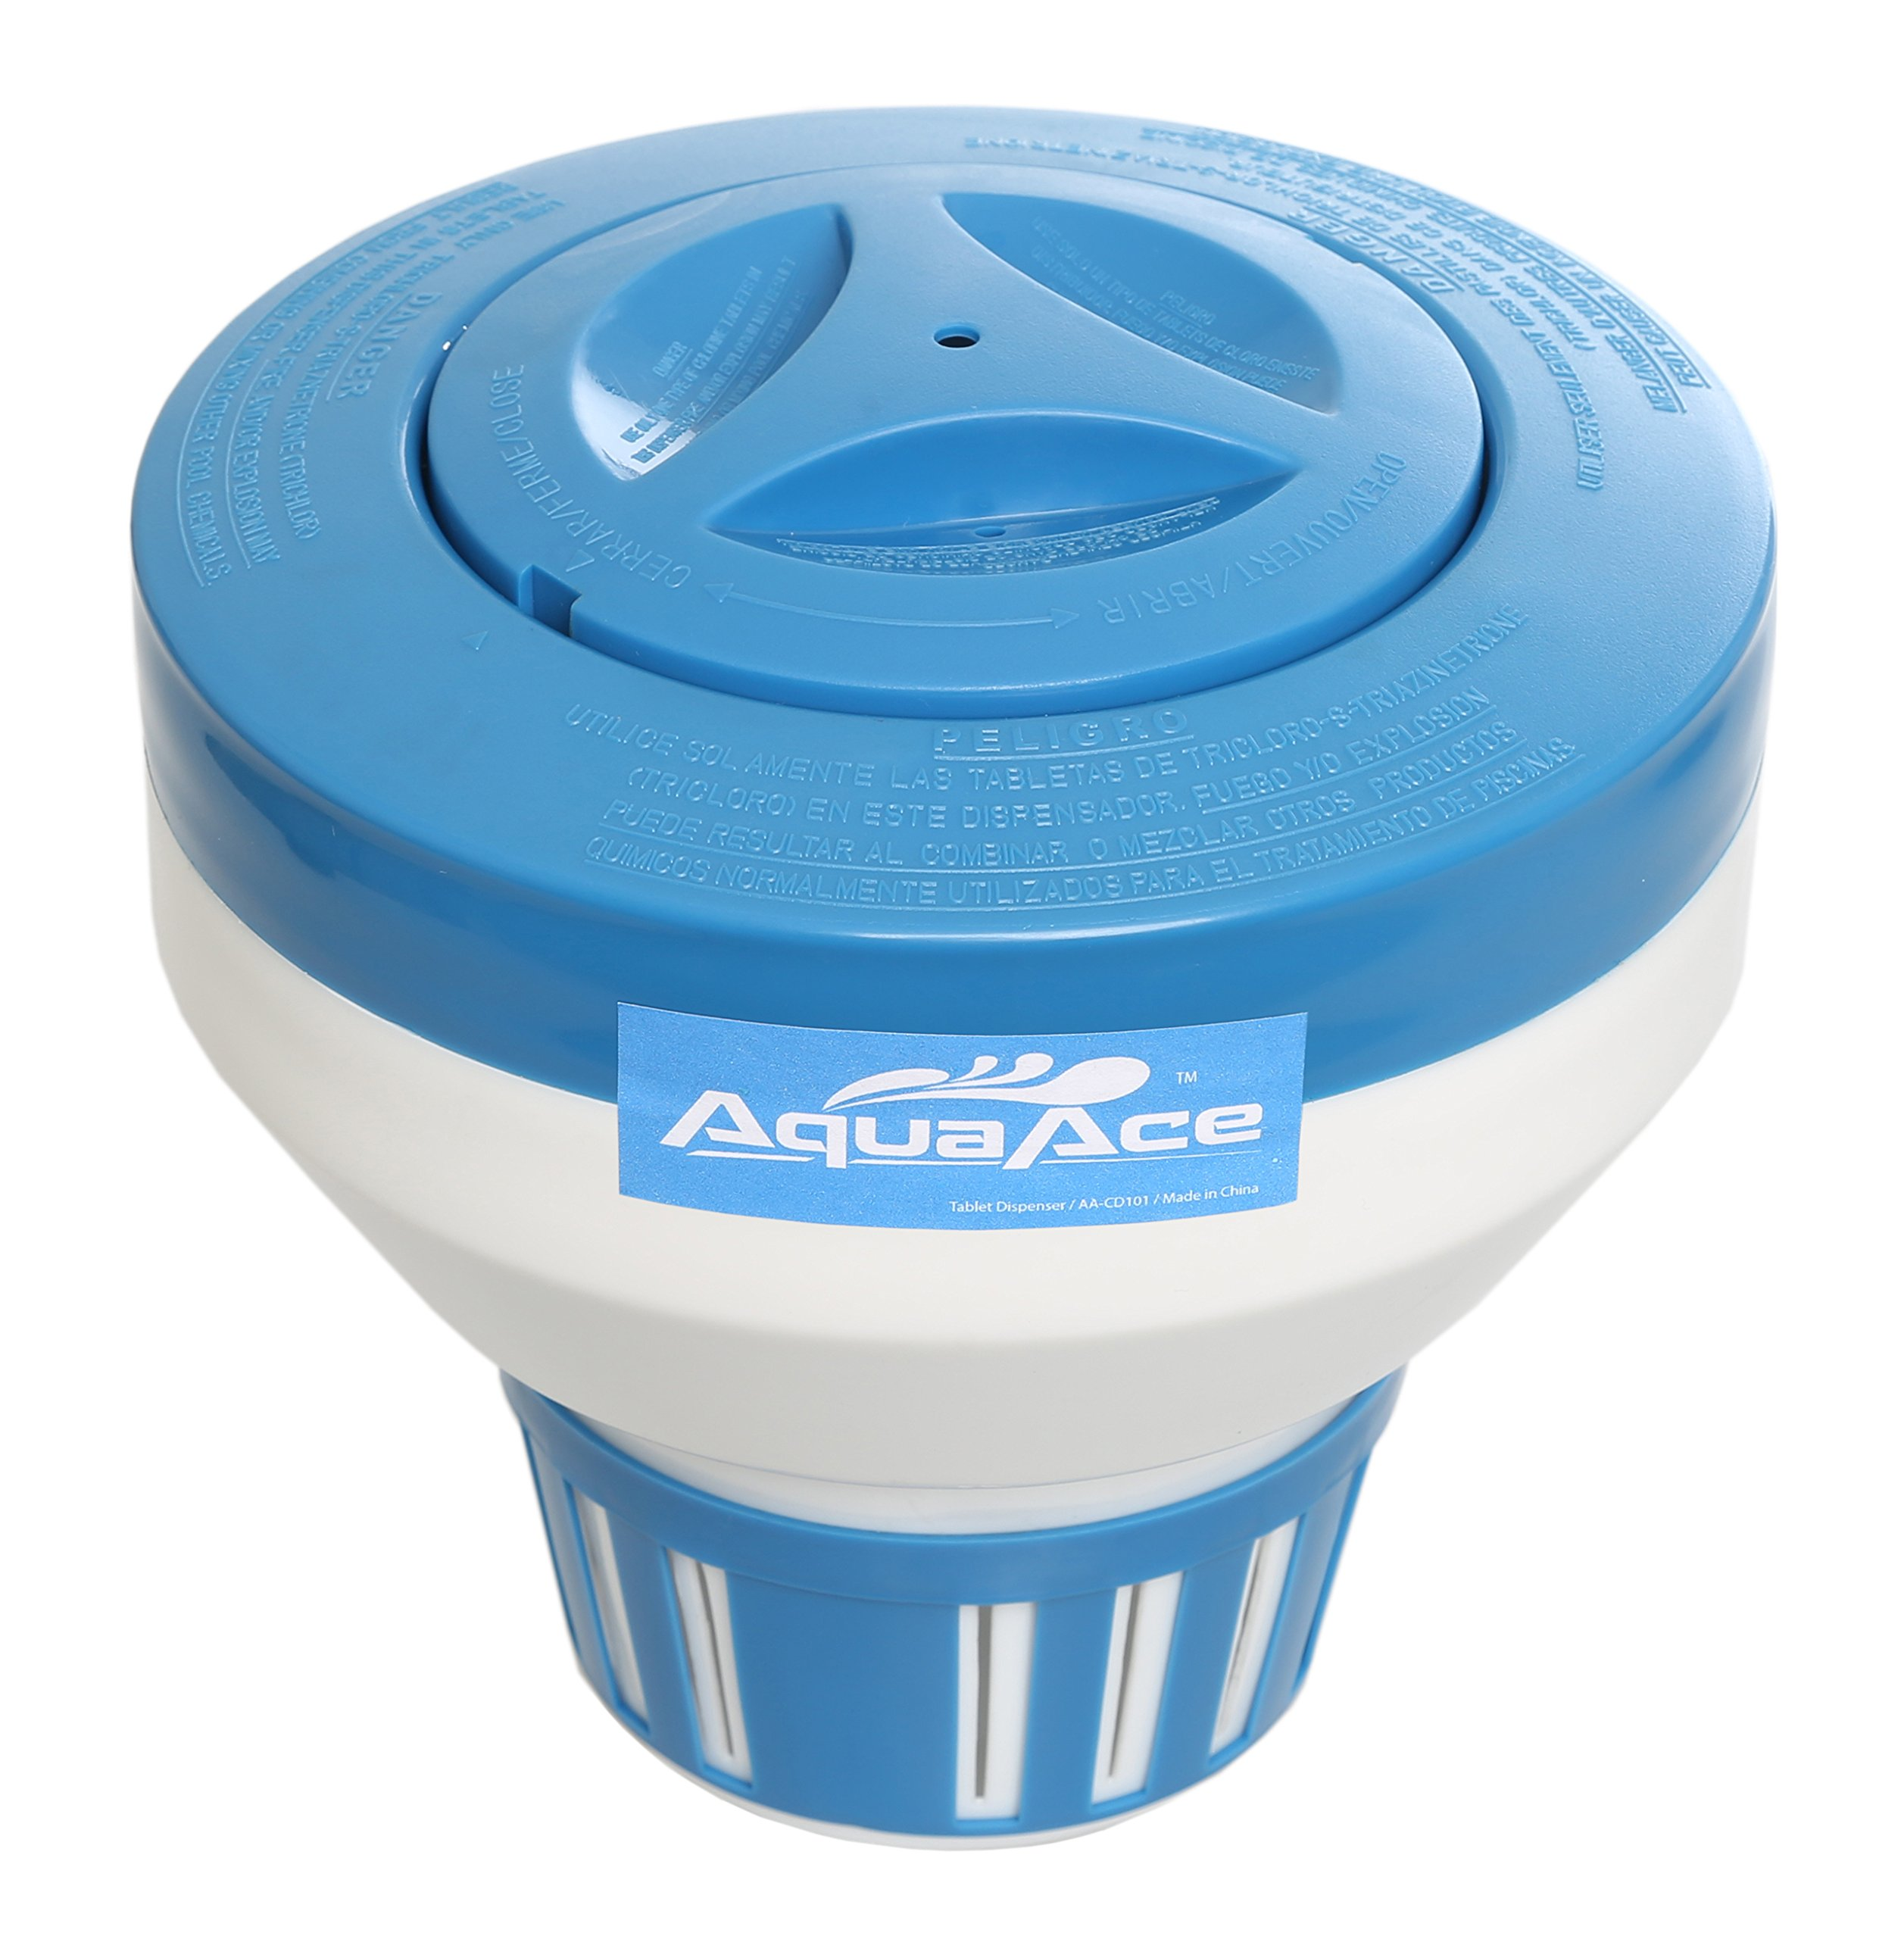 AquaAce Floating Pool Chlorine Dispenser, Premium Floater Classic Design, Chemical Holder for Chlorine Tablets up to 3 inches, Adjustable 15 Flow Vents for Increased Control by AquaAce